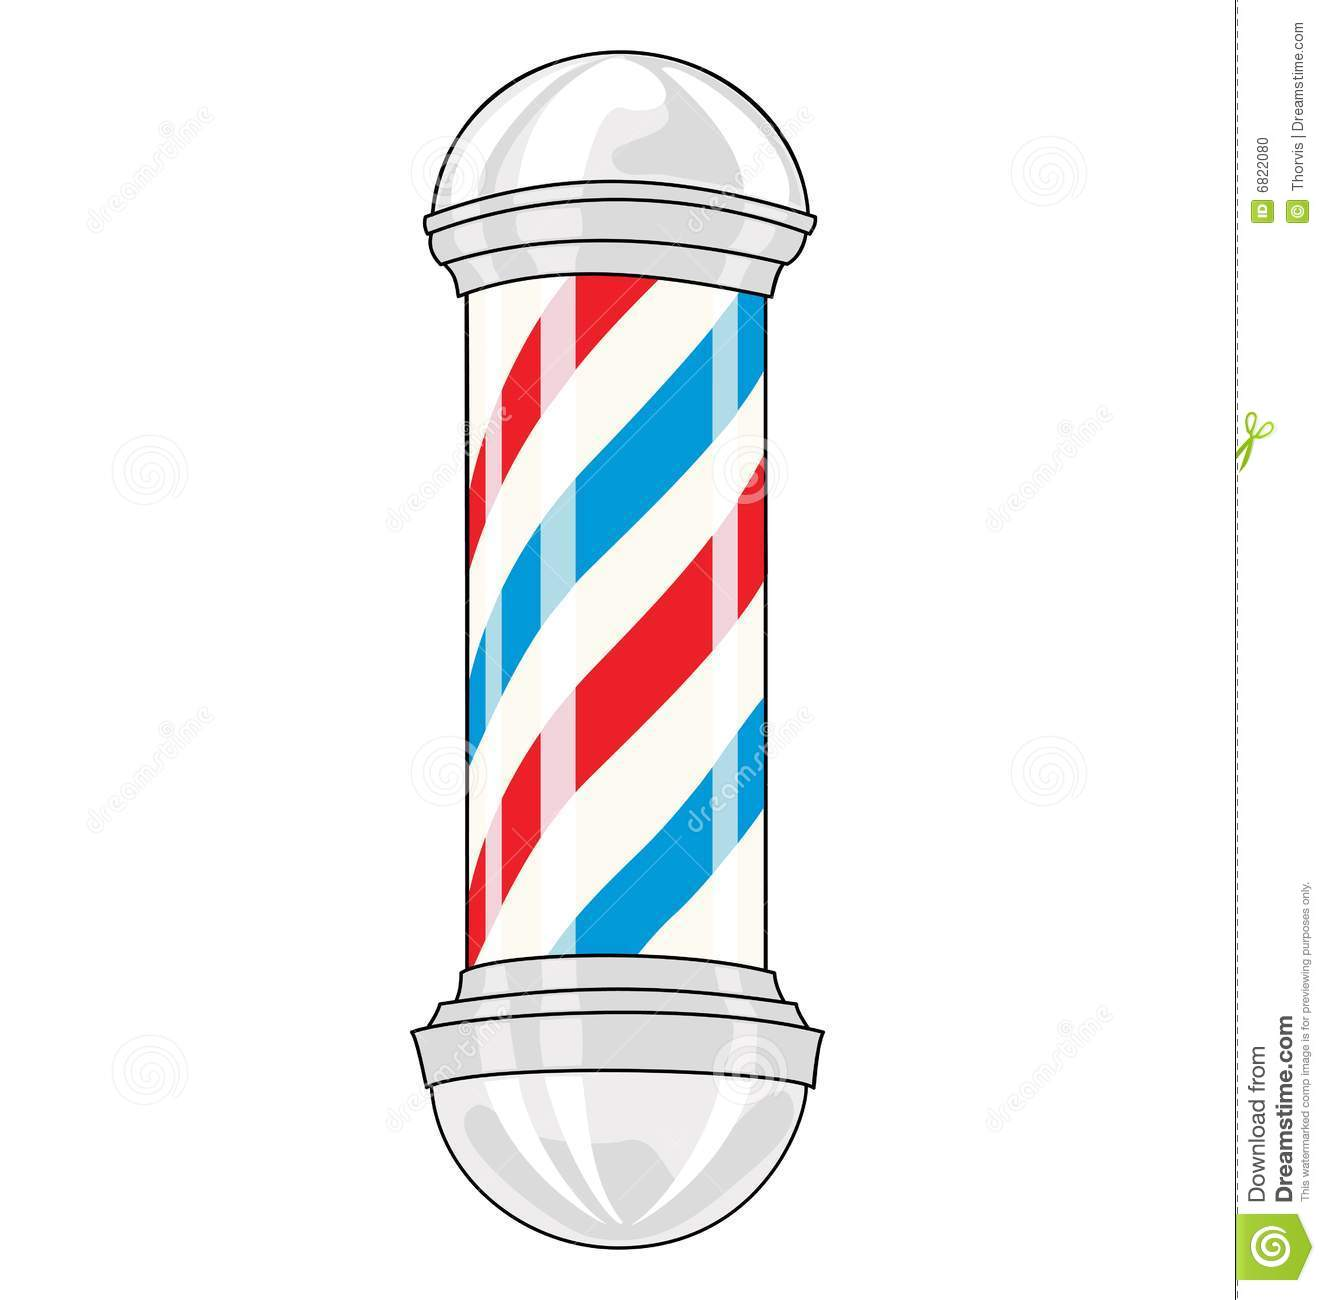 barber pole stock photo image 6822080 Copyright Free Images of Barber Shop Poles Clip Art free barber shop pole clipart